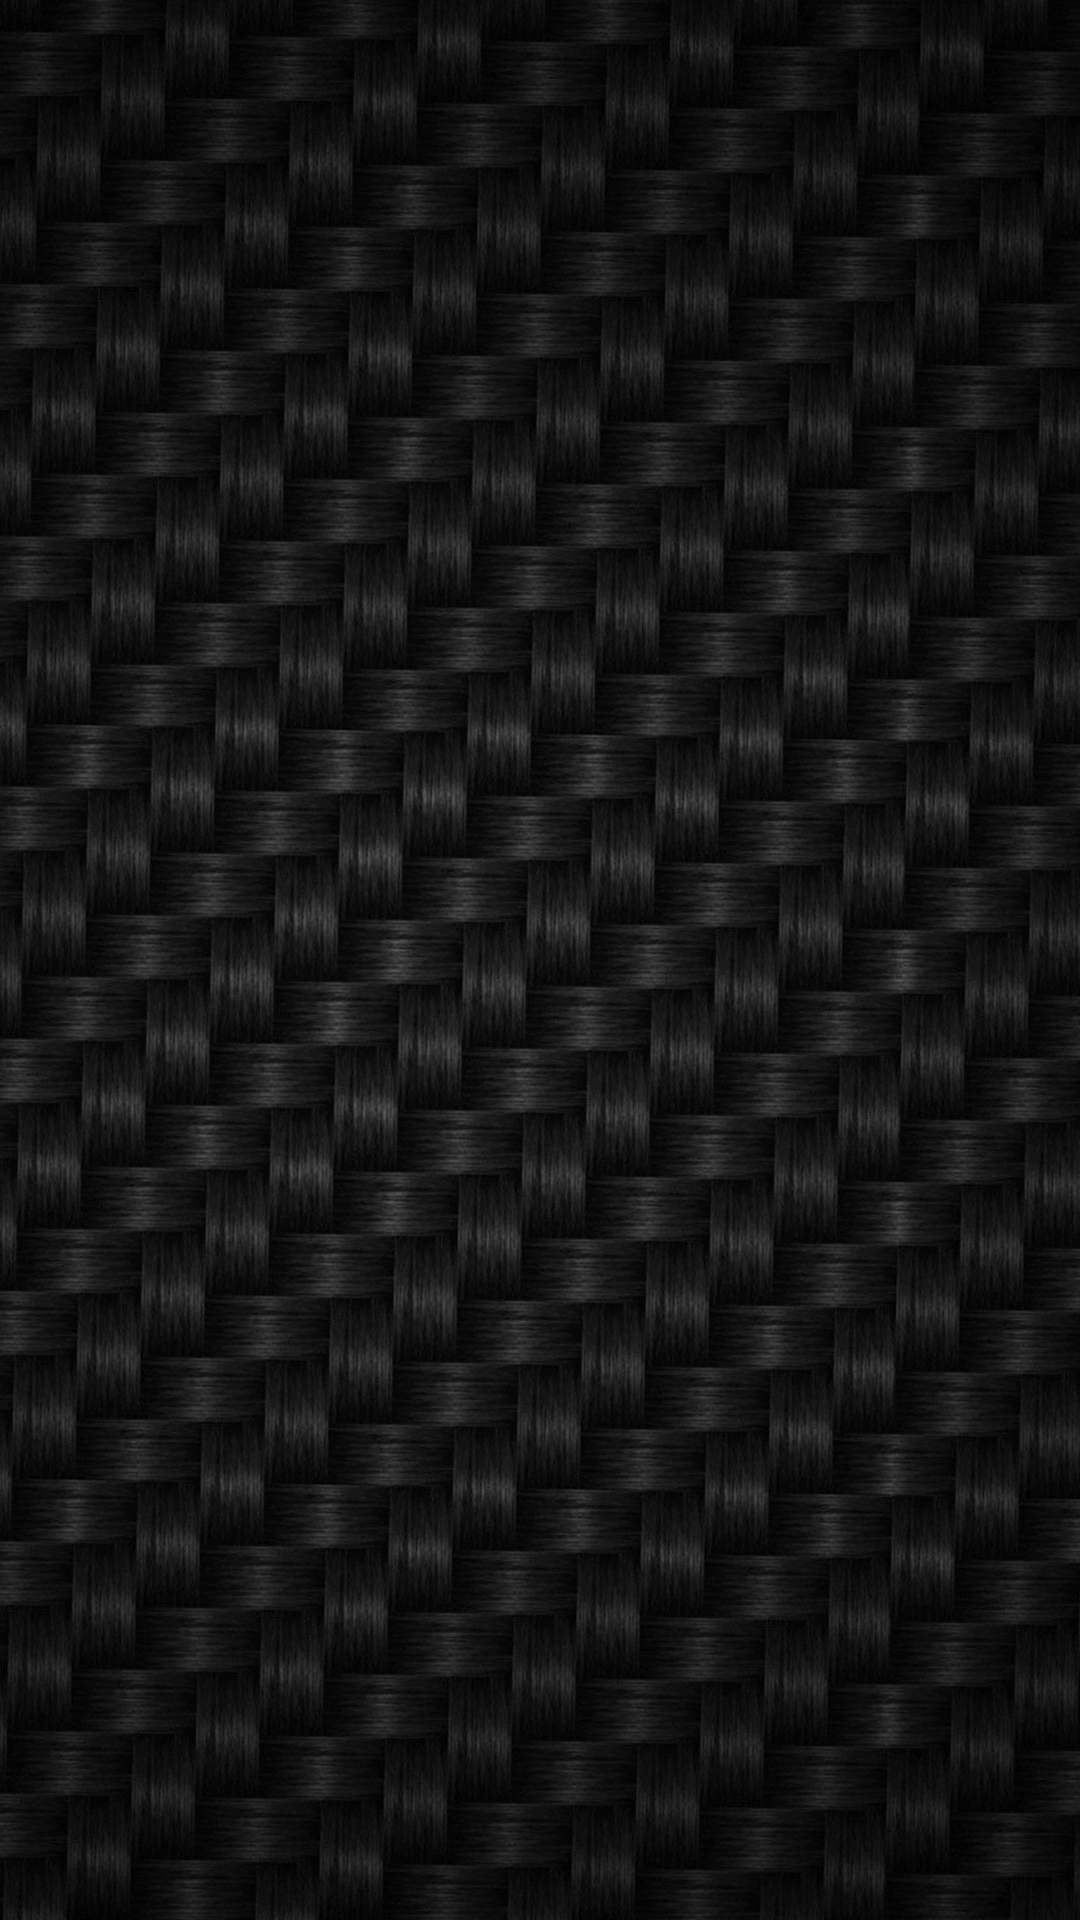 carbon fiber wallpaper android collection (56+)